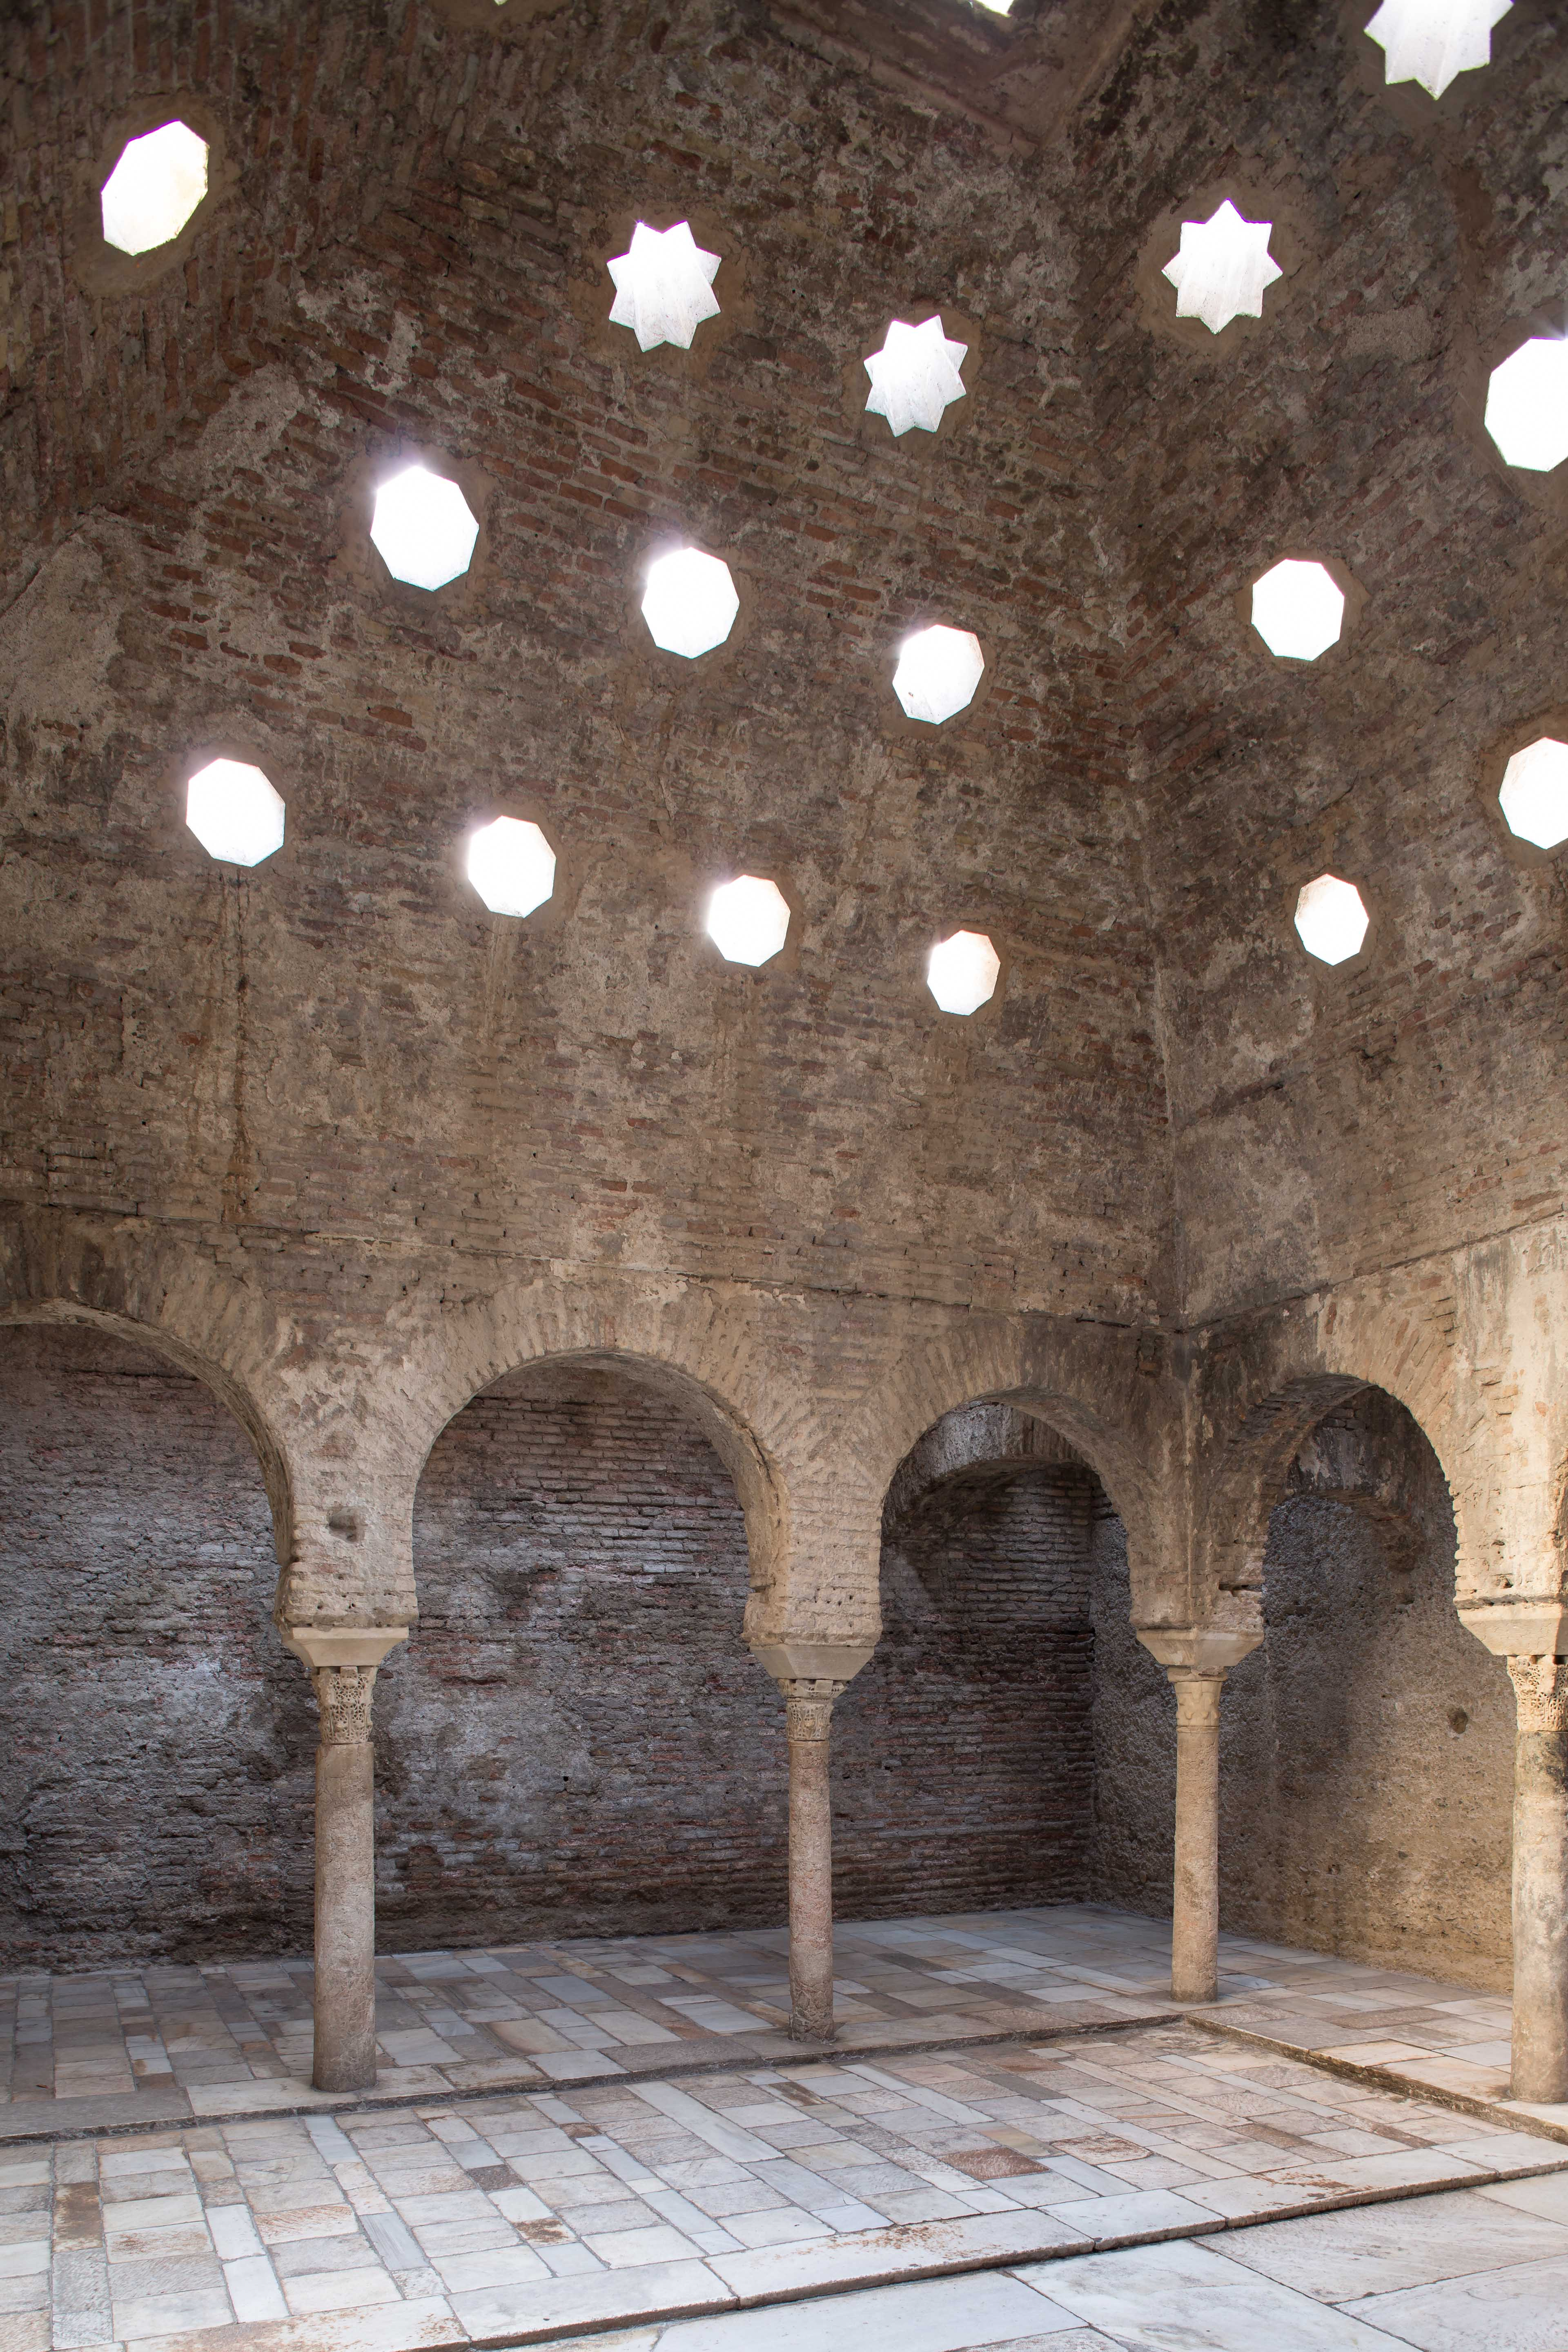 The Alhambra improves the accessibility of the Bañuelo